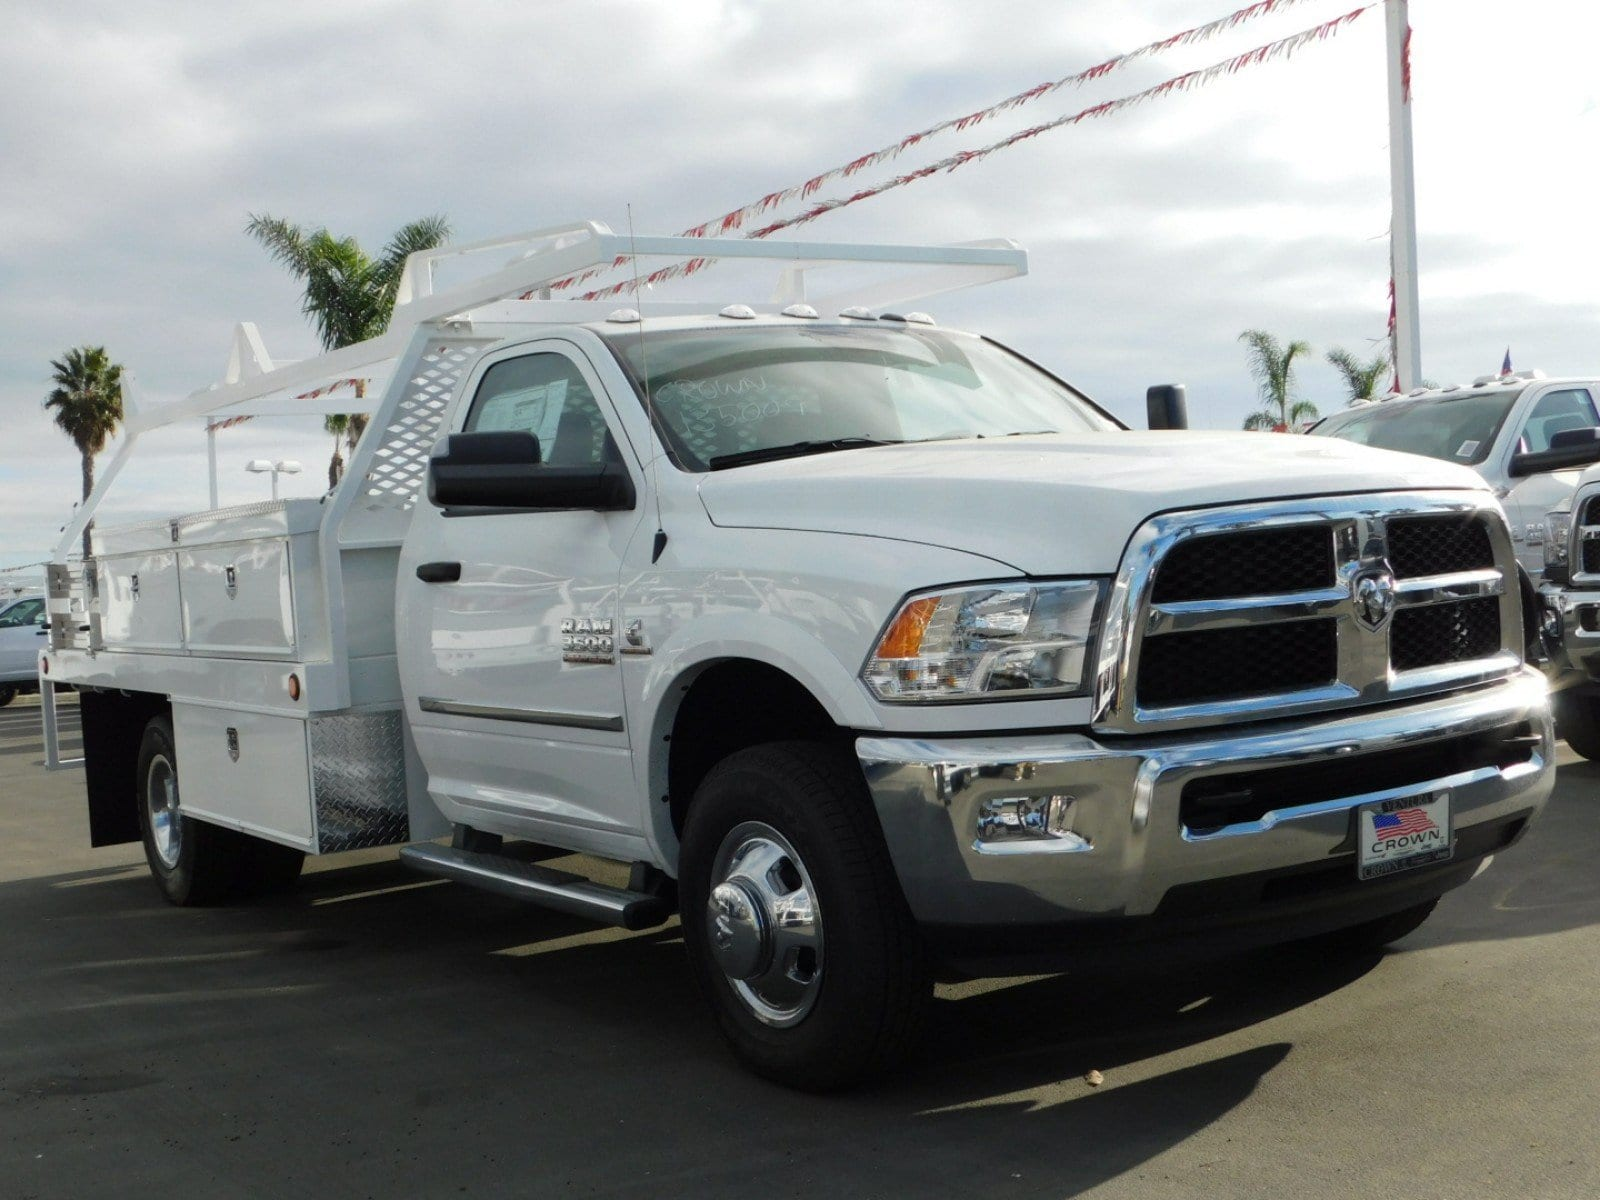 2018 Ram 3500 Regular Cab DRW, Scelzi Contractor Body #E1602 - photo 4